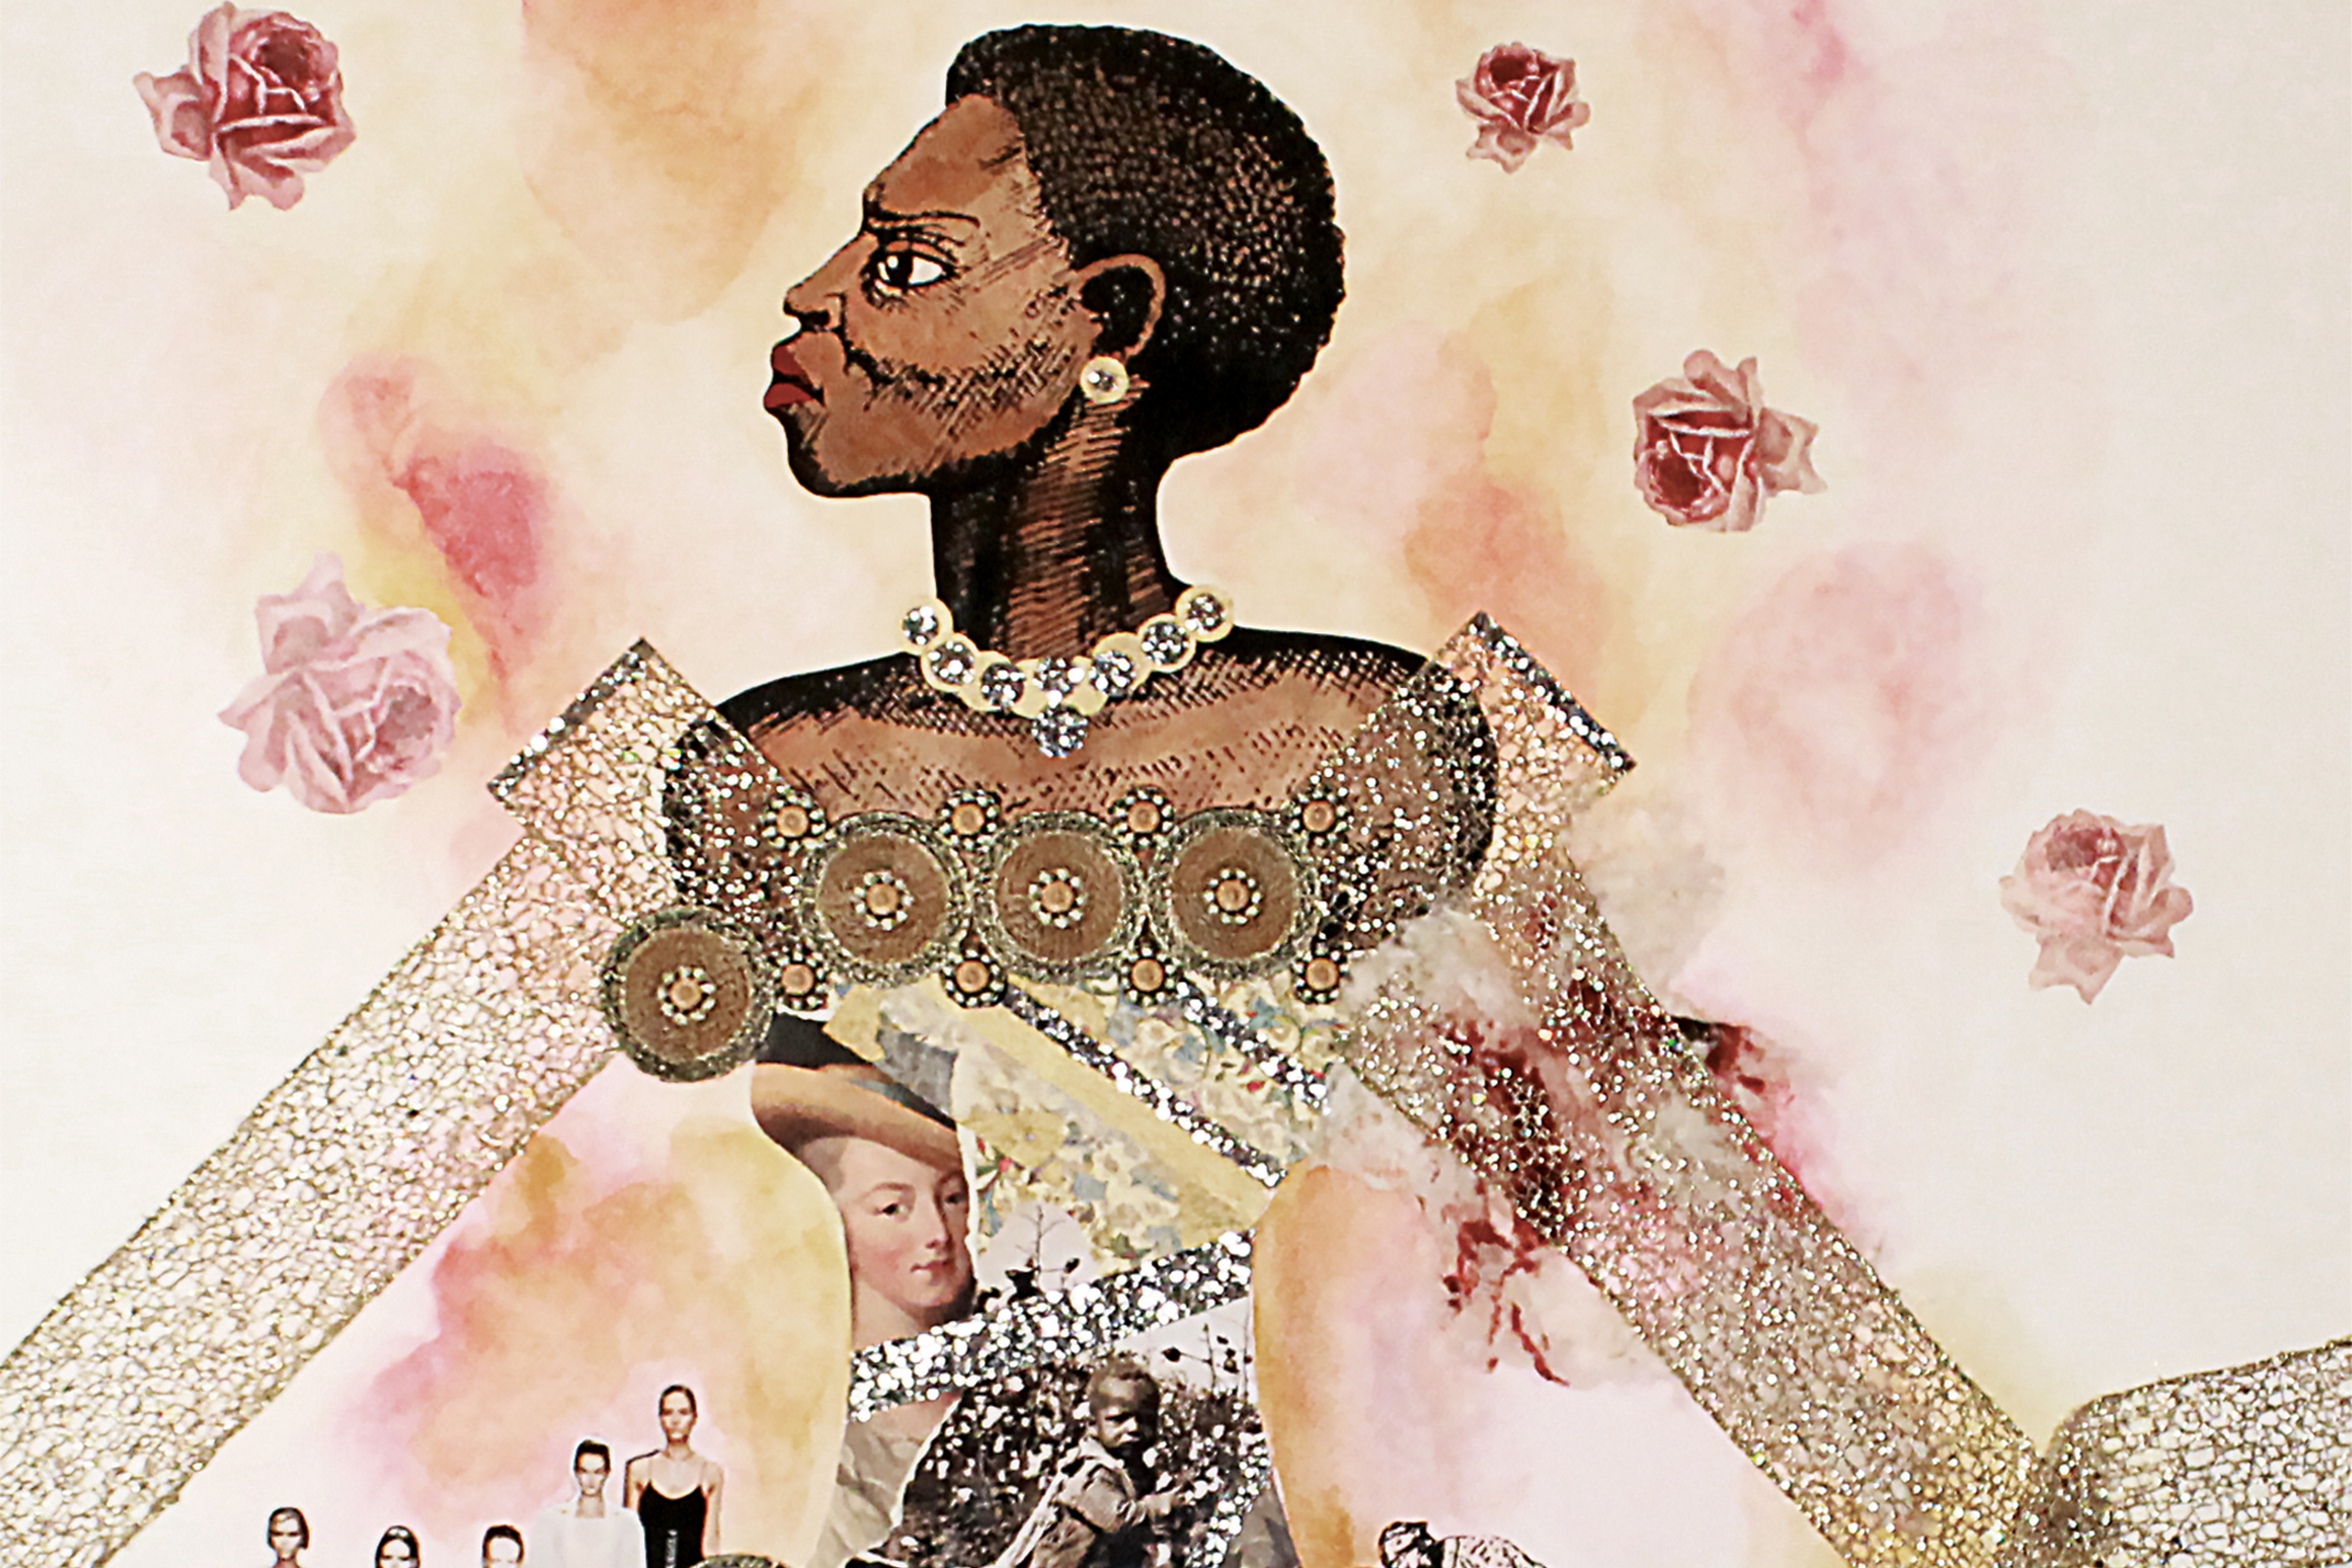 collage of a black woman in a wedding dress constructed in cotton, fashion magazines, slave notices and vintage slave photography